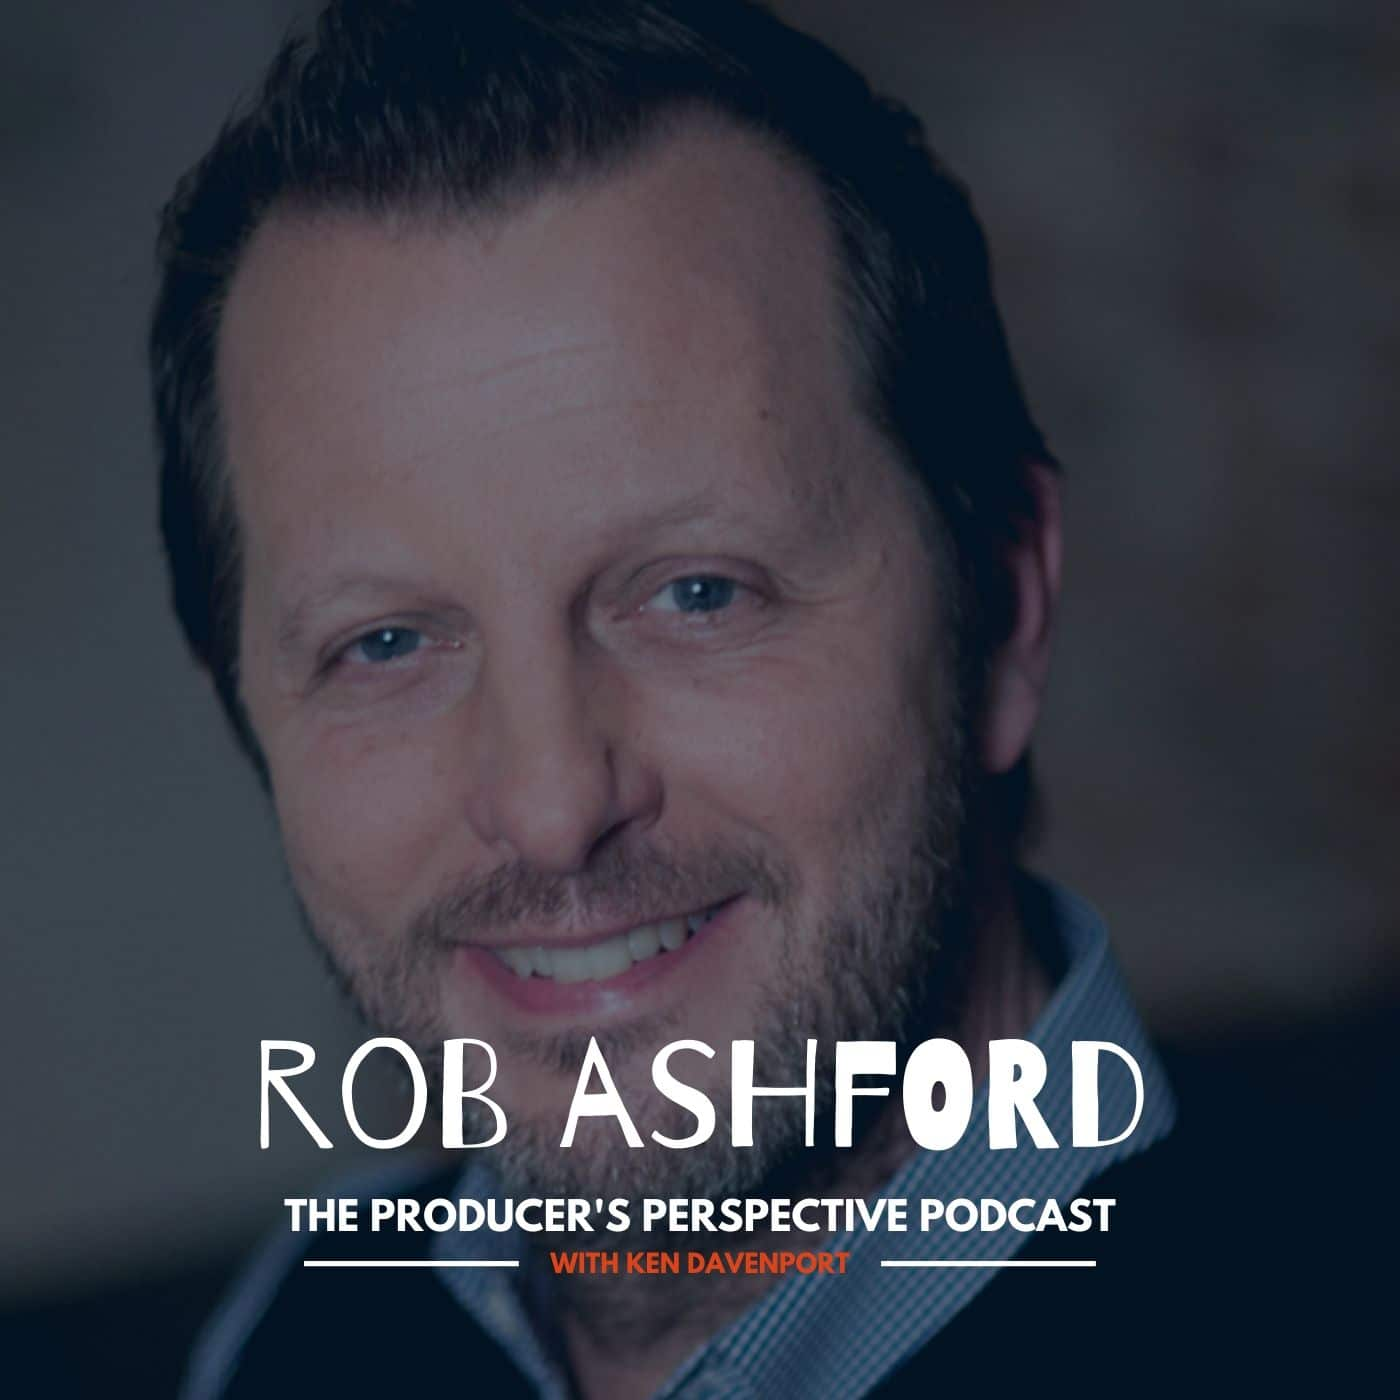 Ken Davenport's The Producer's Perspective Podcast Episode 116 - Rob Ashford